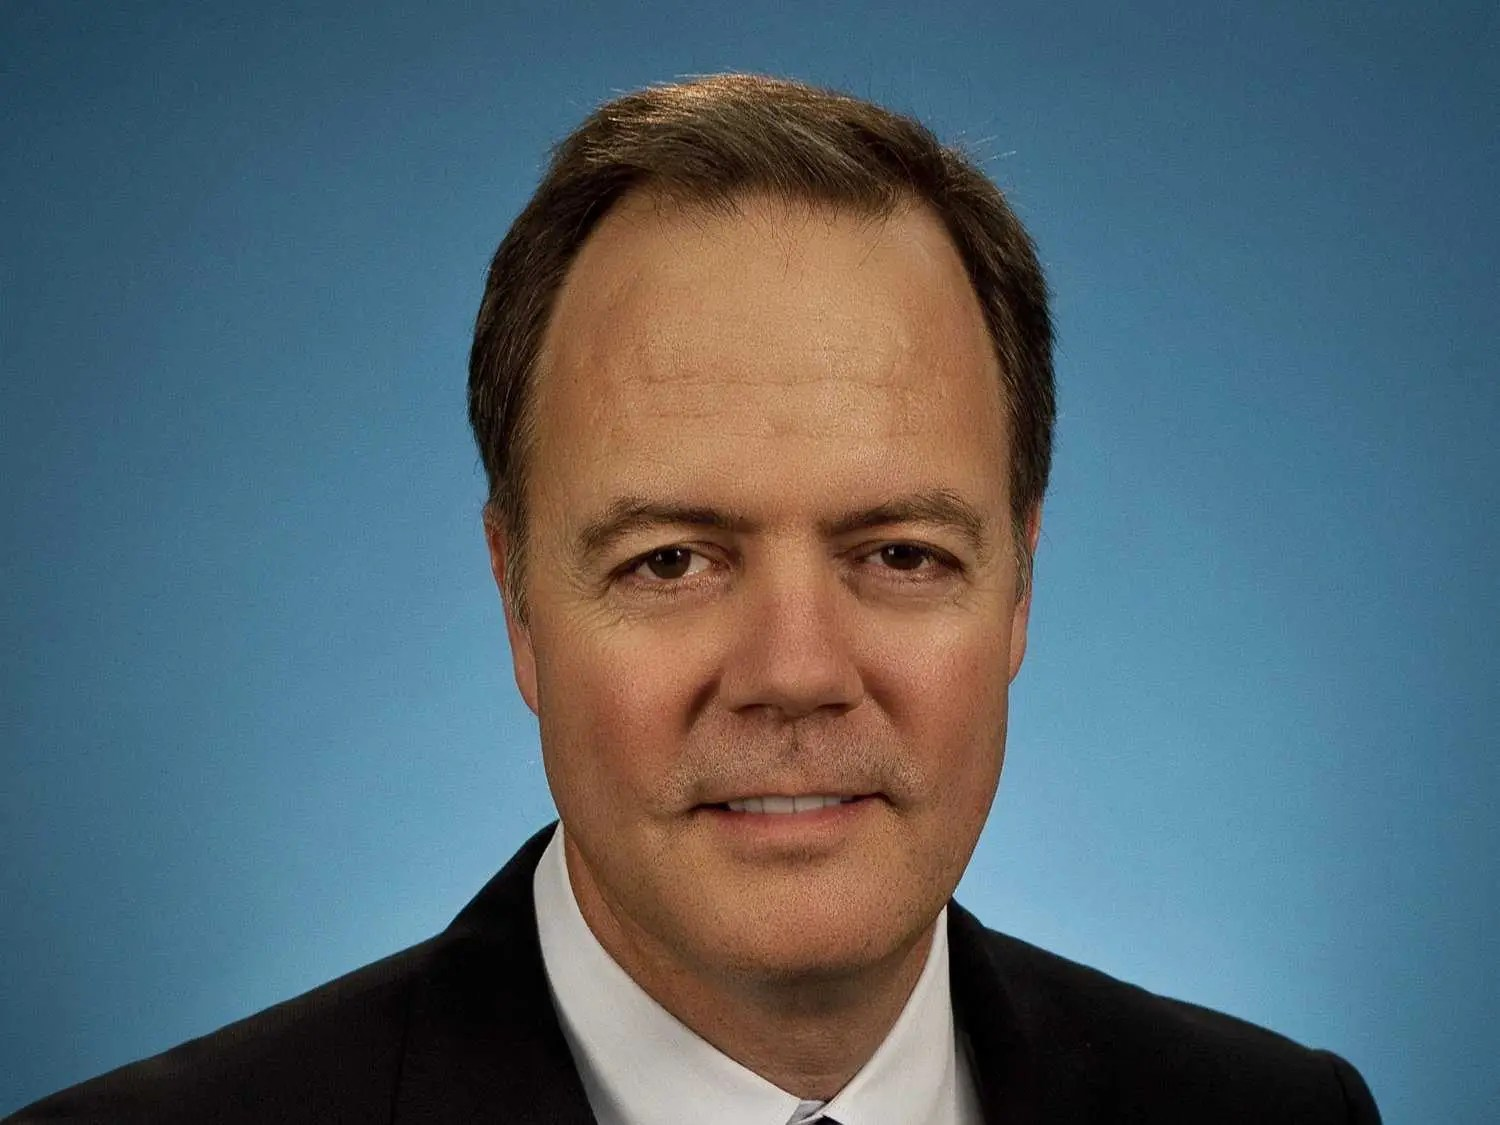 Freescale Semiconductor's Gregg Lowe made $20.7 million in 2012.